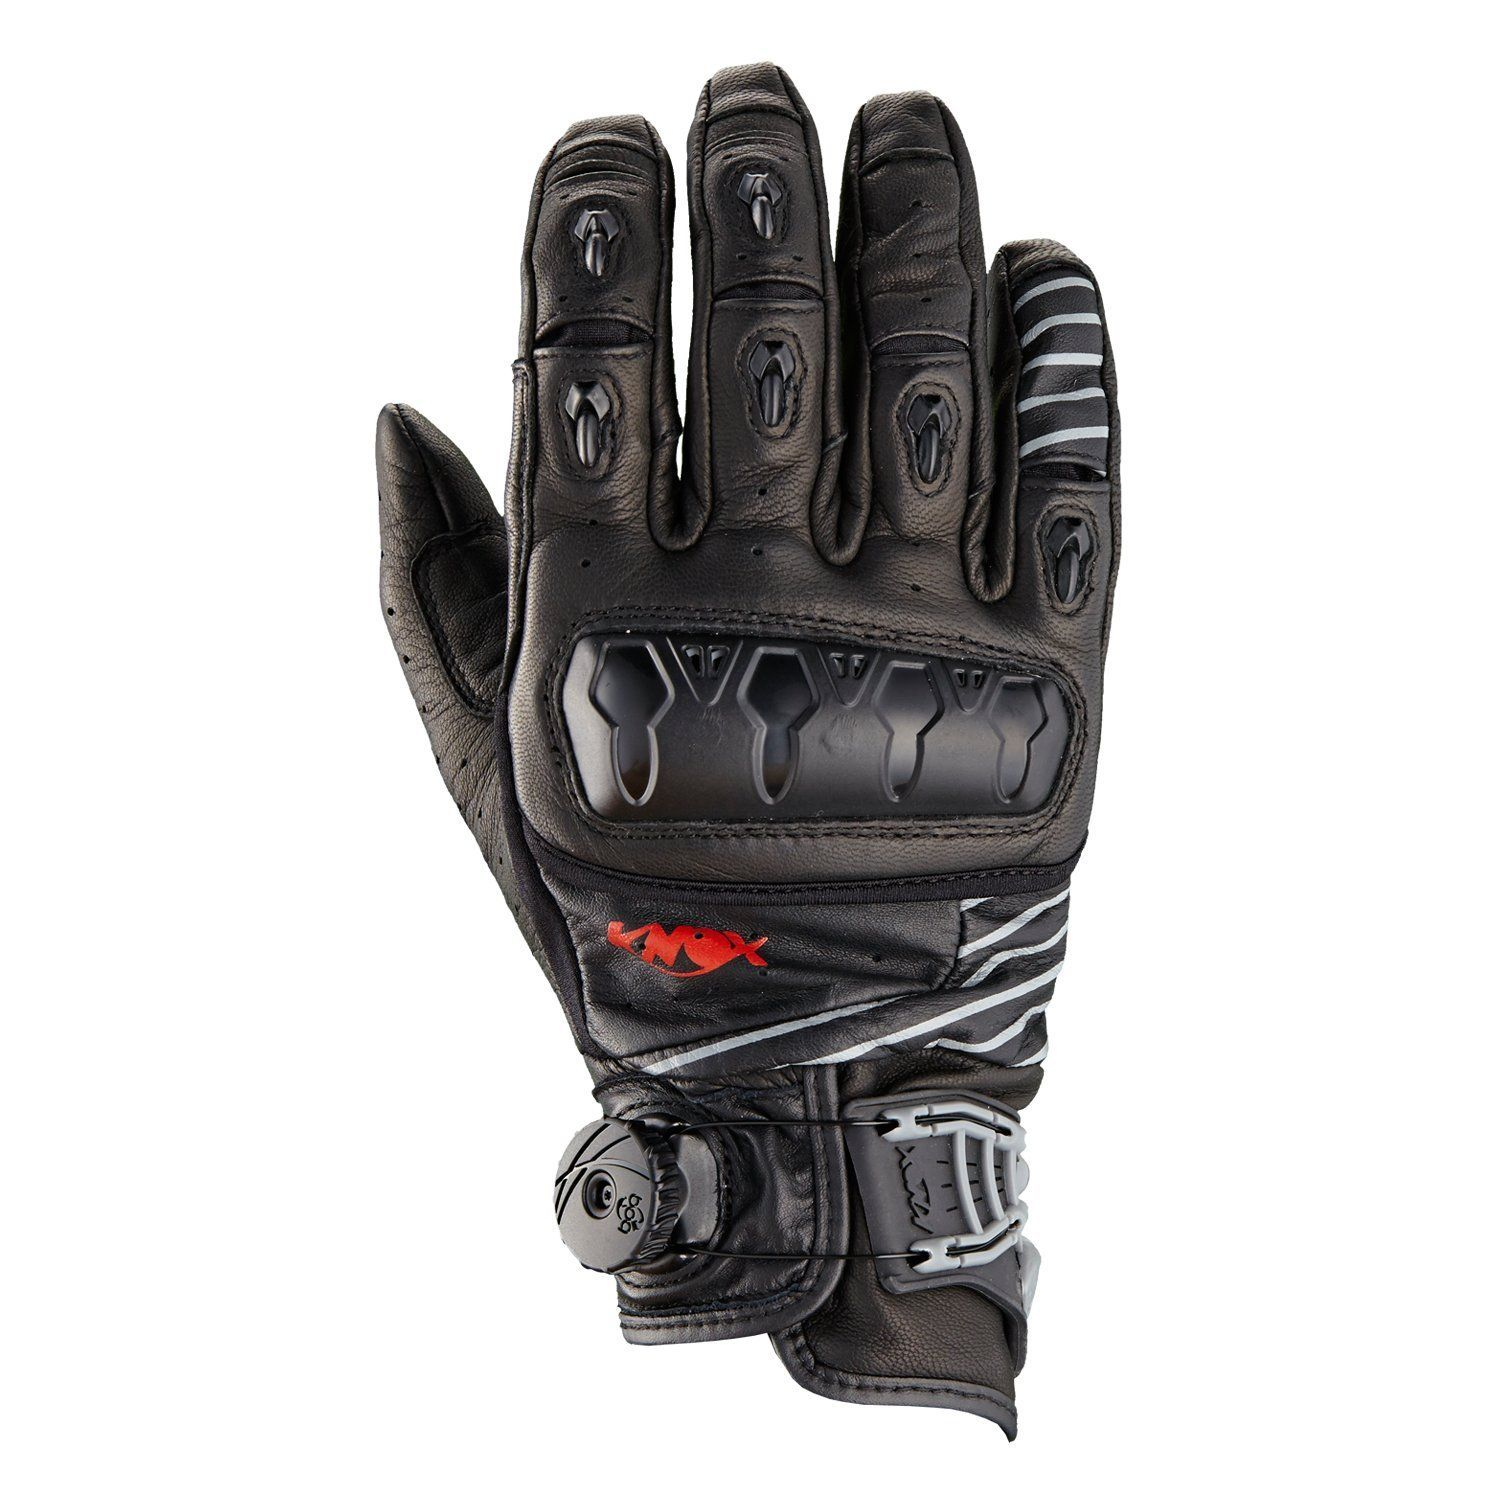 Motorcycle gloves ce approved - Fully Ce Approved Orsa Leather Perforated Summer Motorbike Gloves